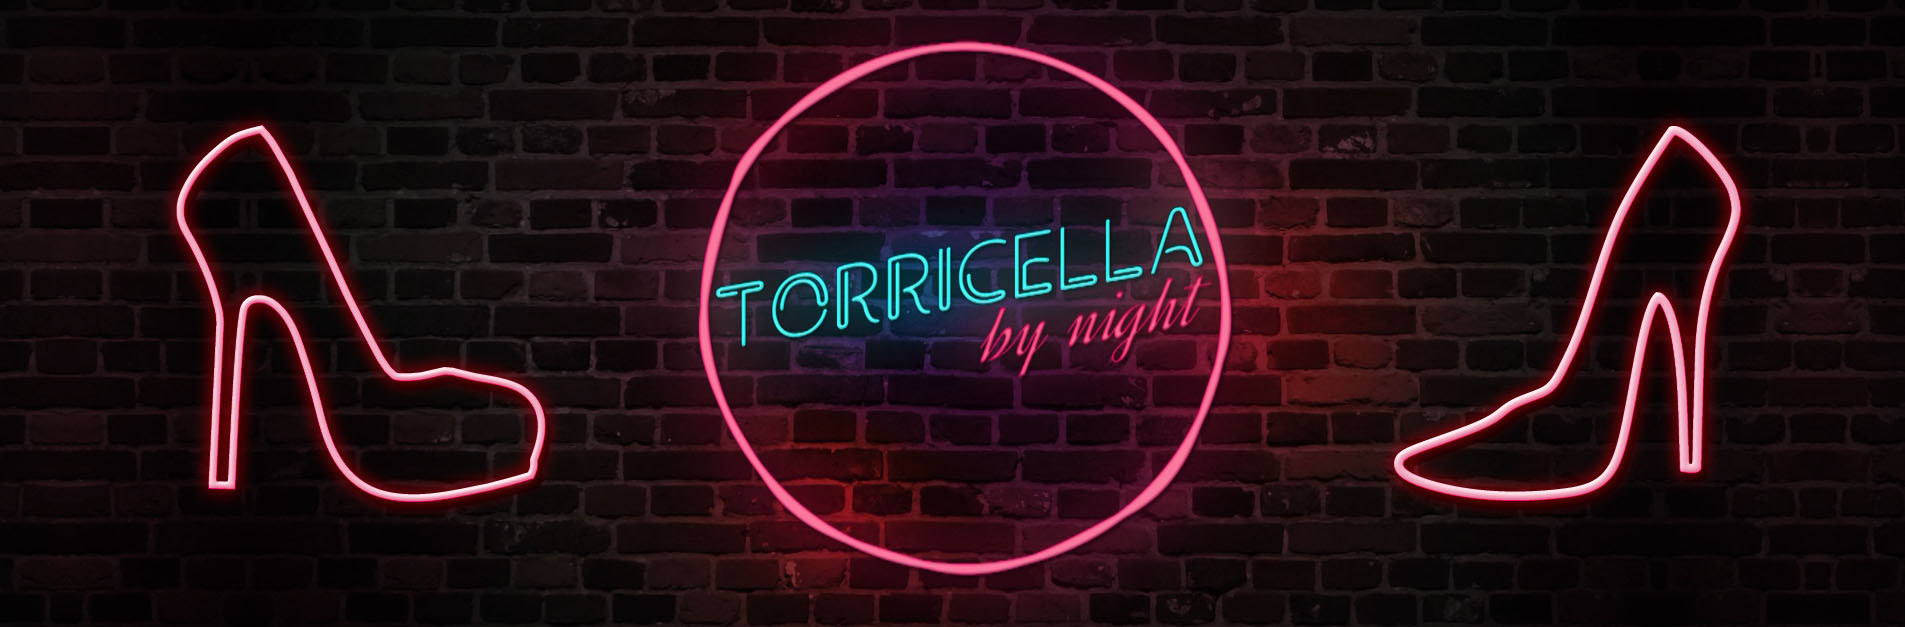 Torricella By Night